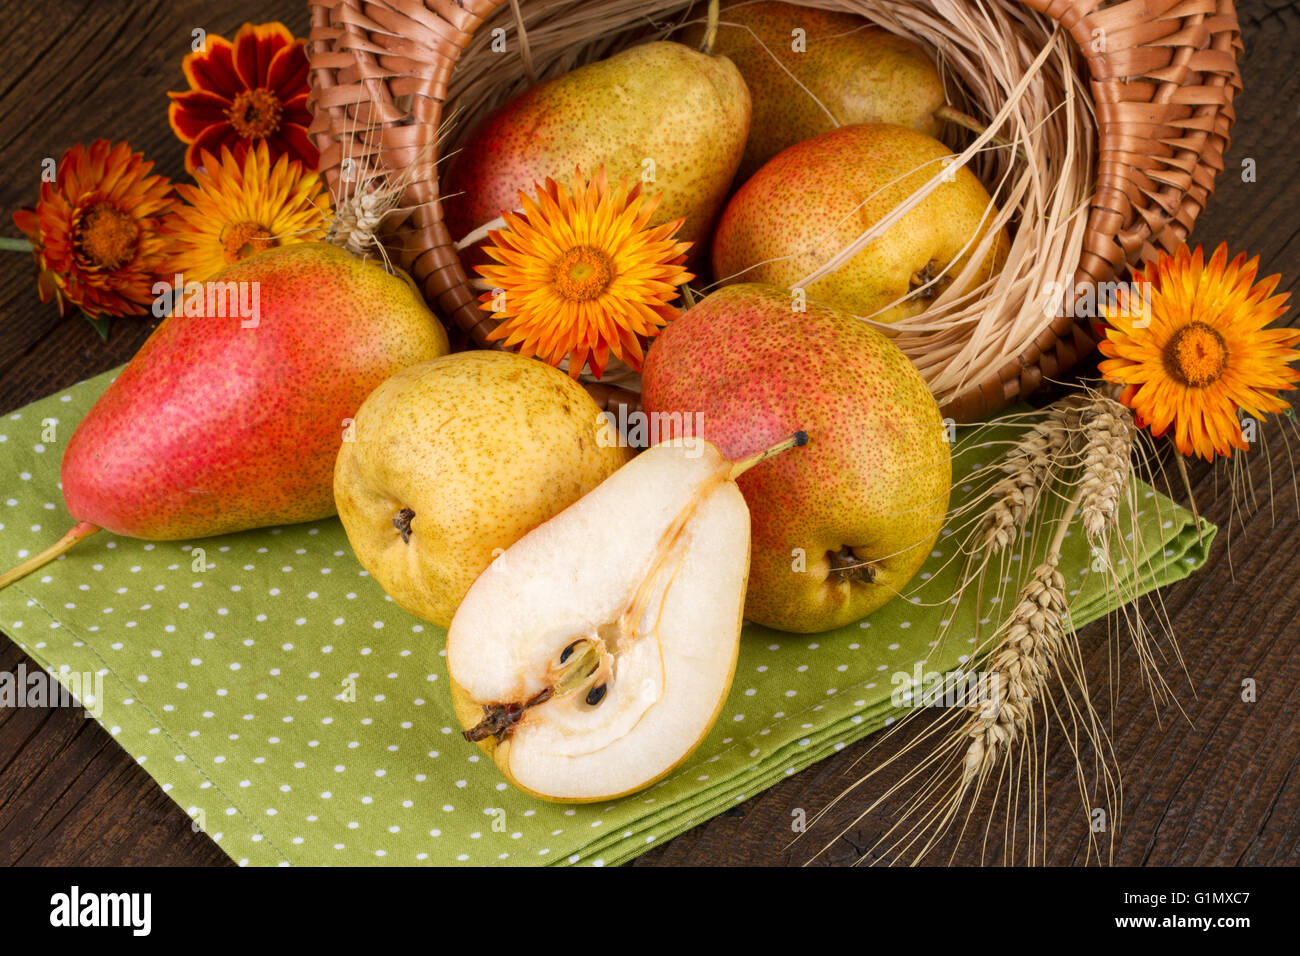 Pears Thanksgiving Day decoration - Stock Image